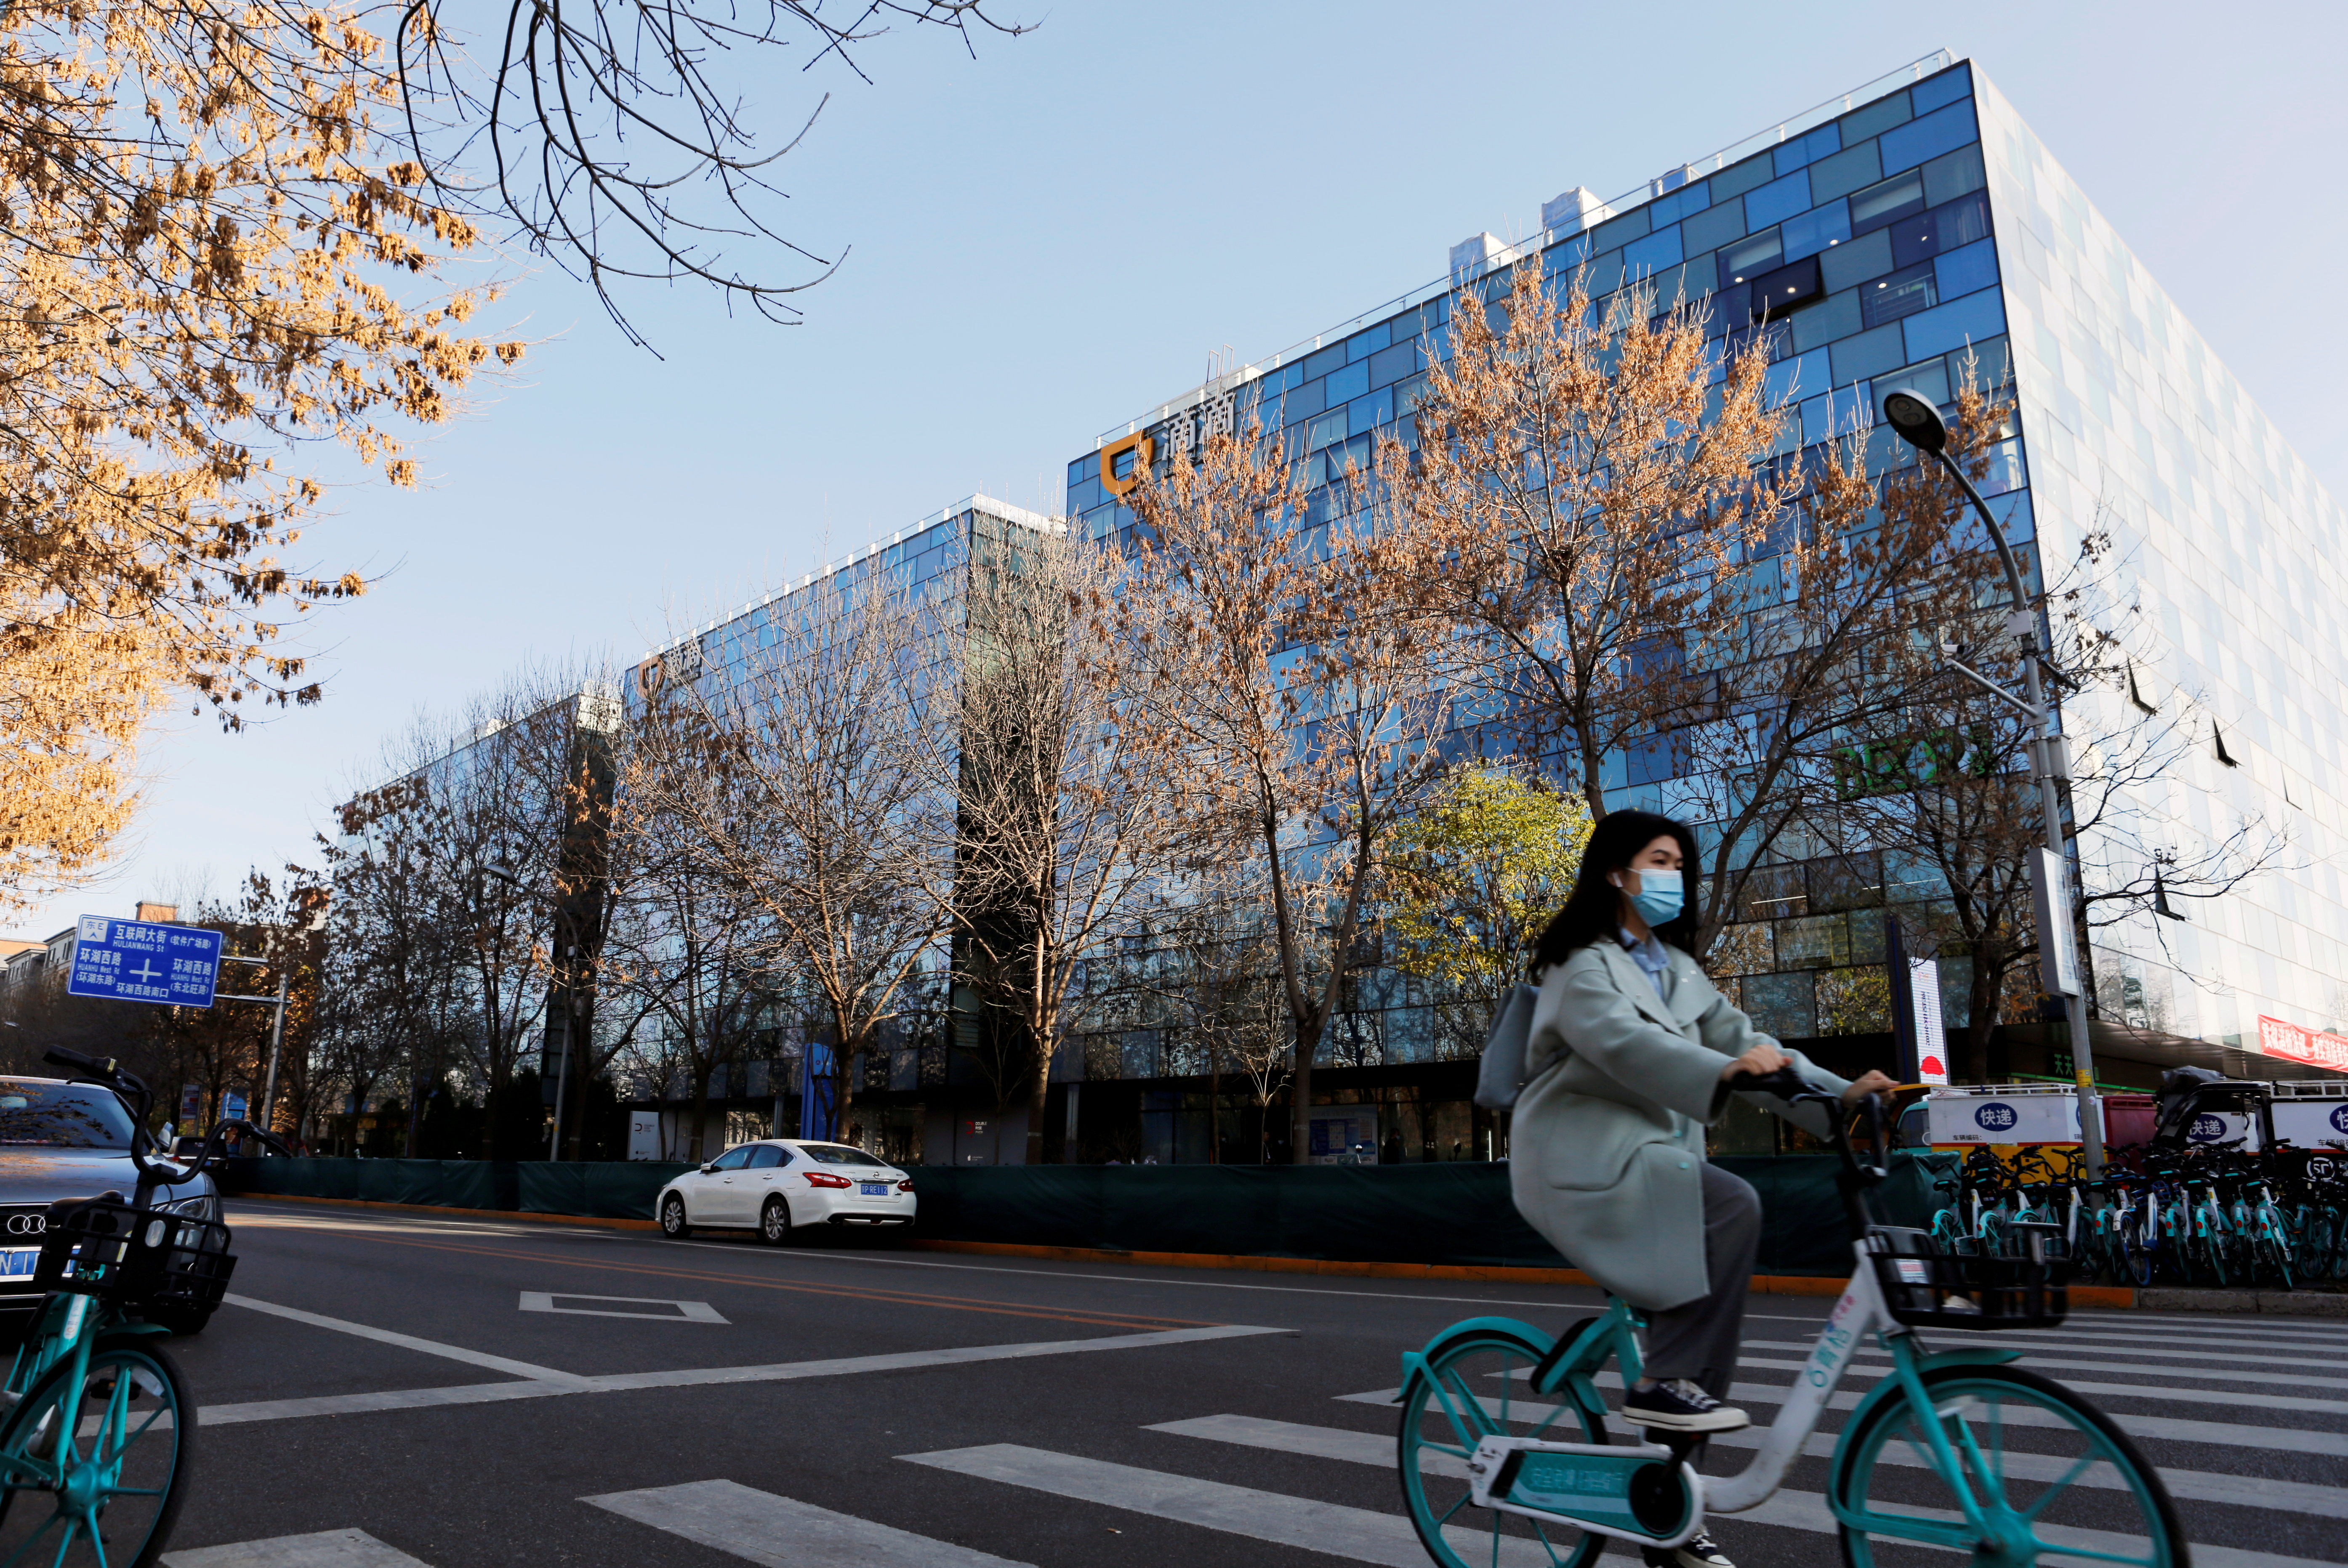 A woman rides a Didi shared bicycle past the headquarters of Didi Chuxing in Beijing, China November 20, 2020. REUTERS/Florence Lo/File Photo